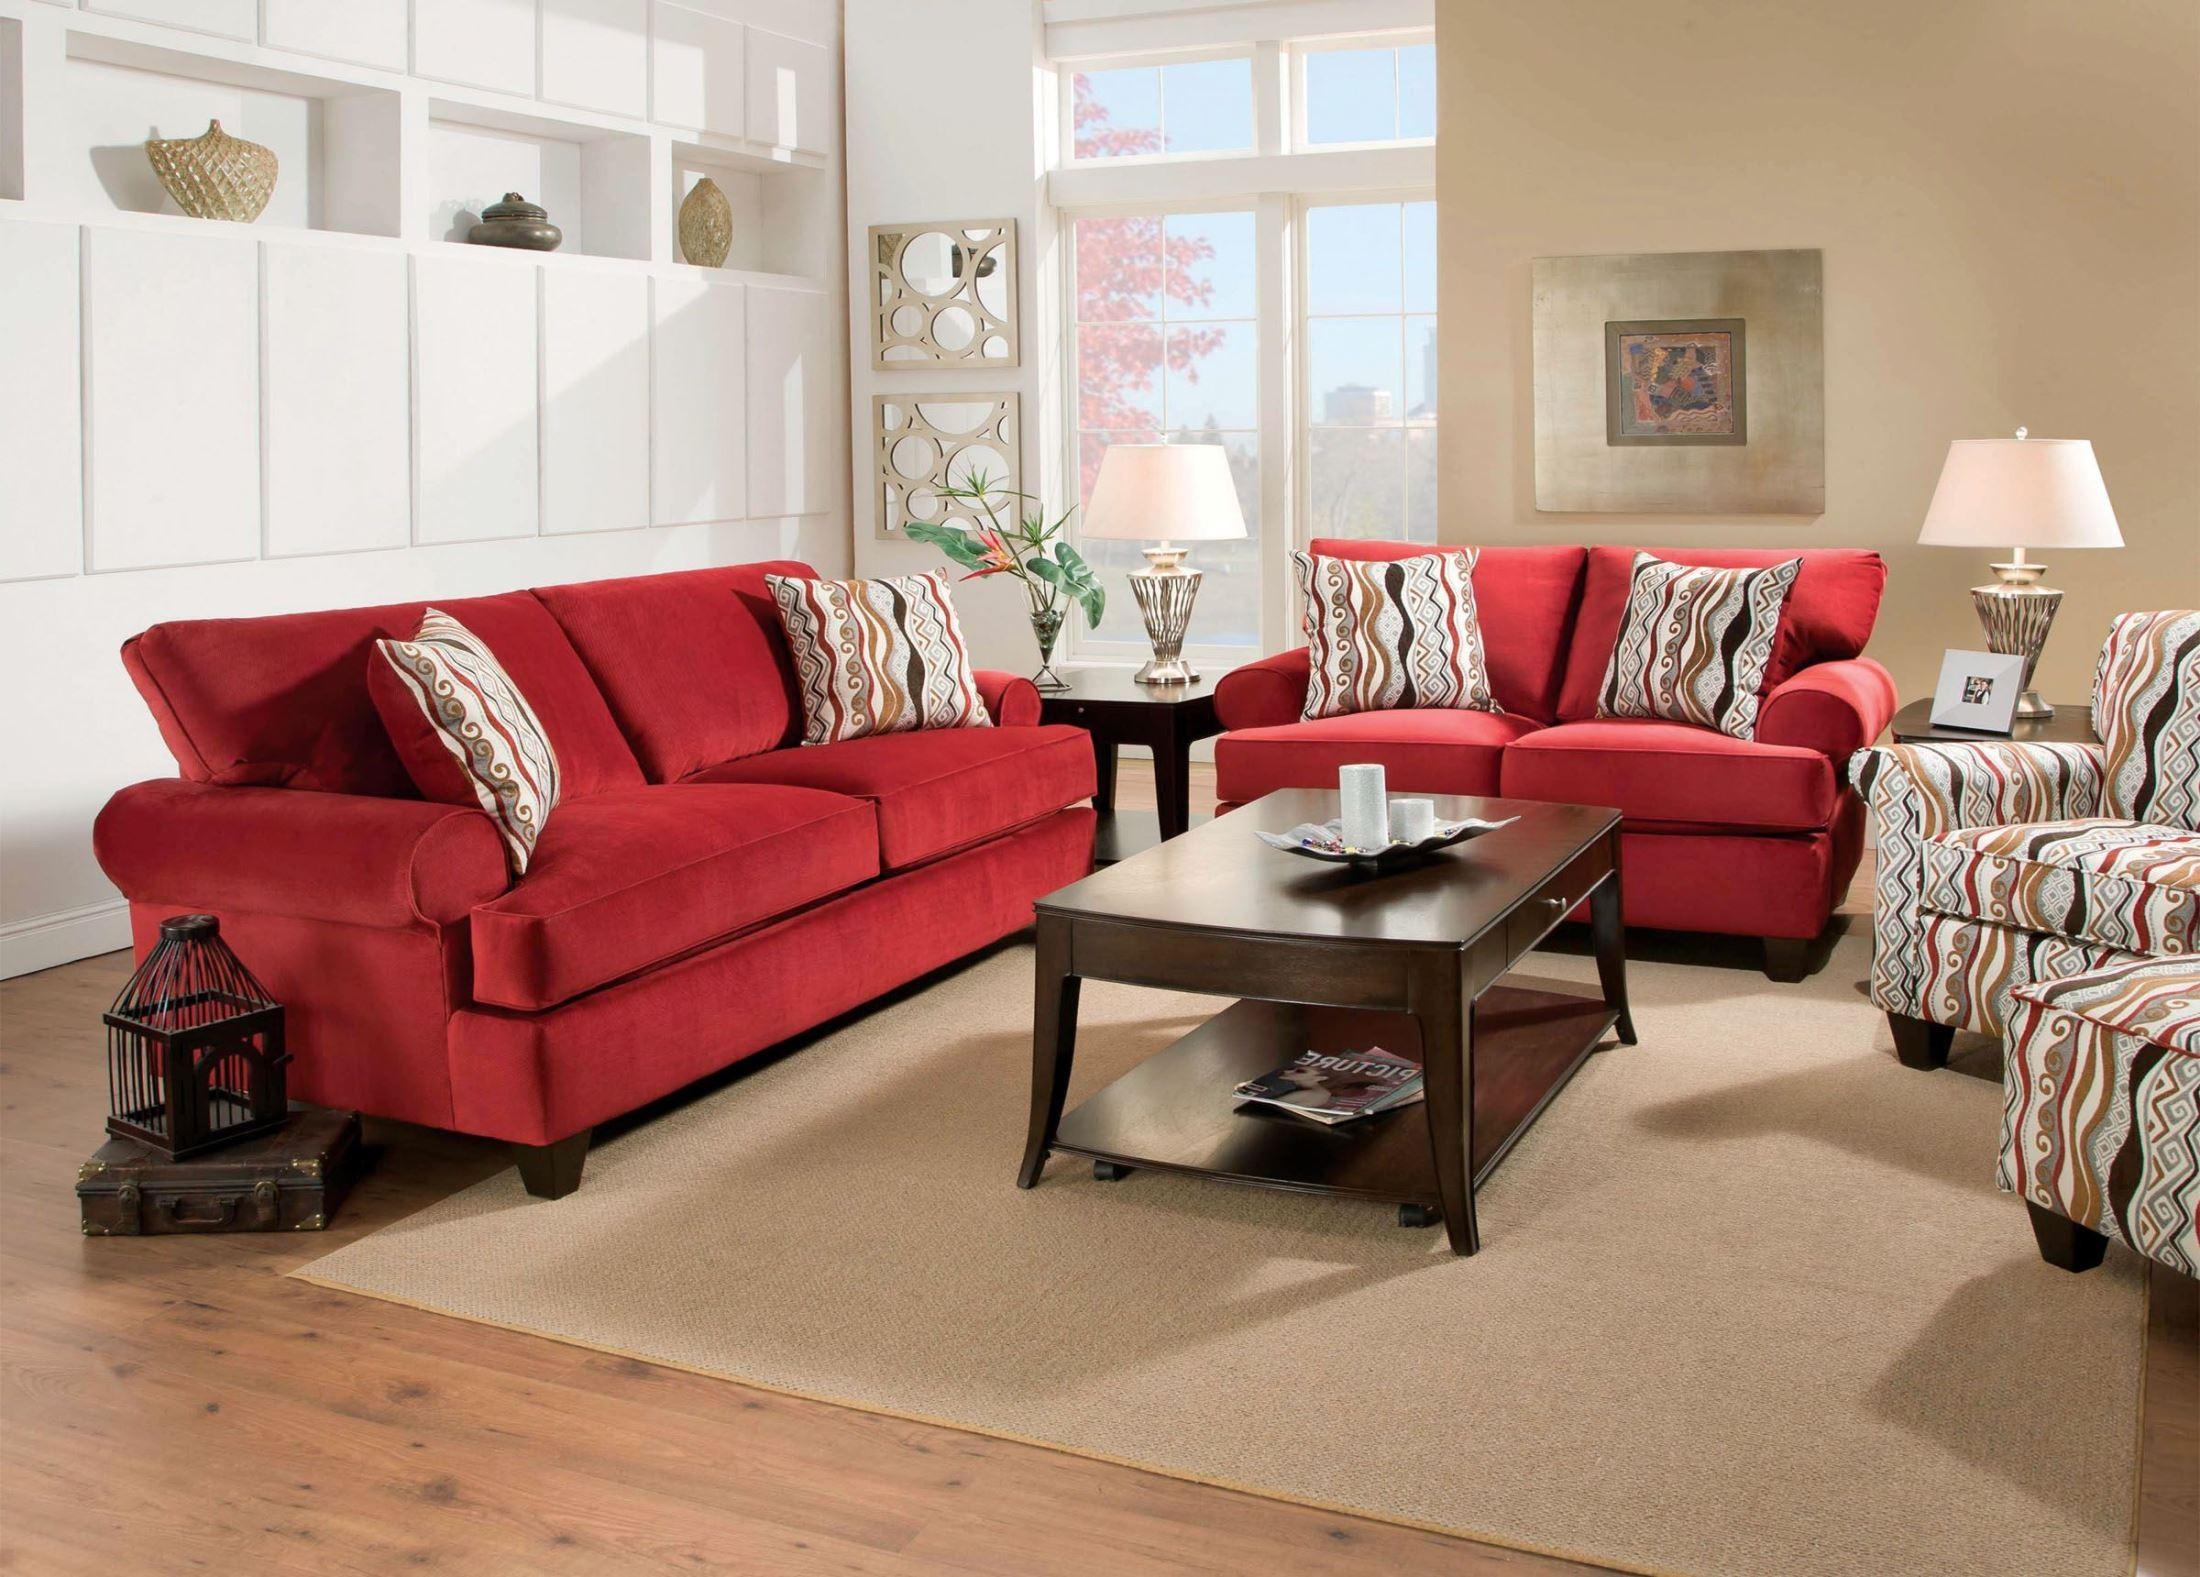 Inverness Red Corded Fabric Living Room Set from Furniture of America SM5047 SF